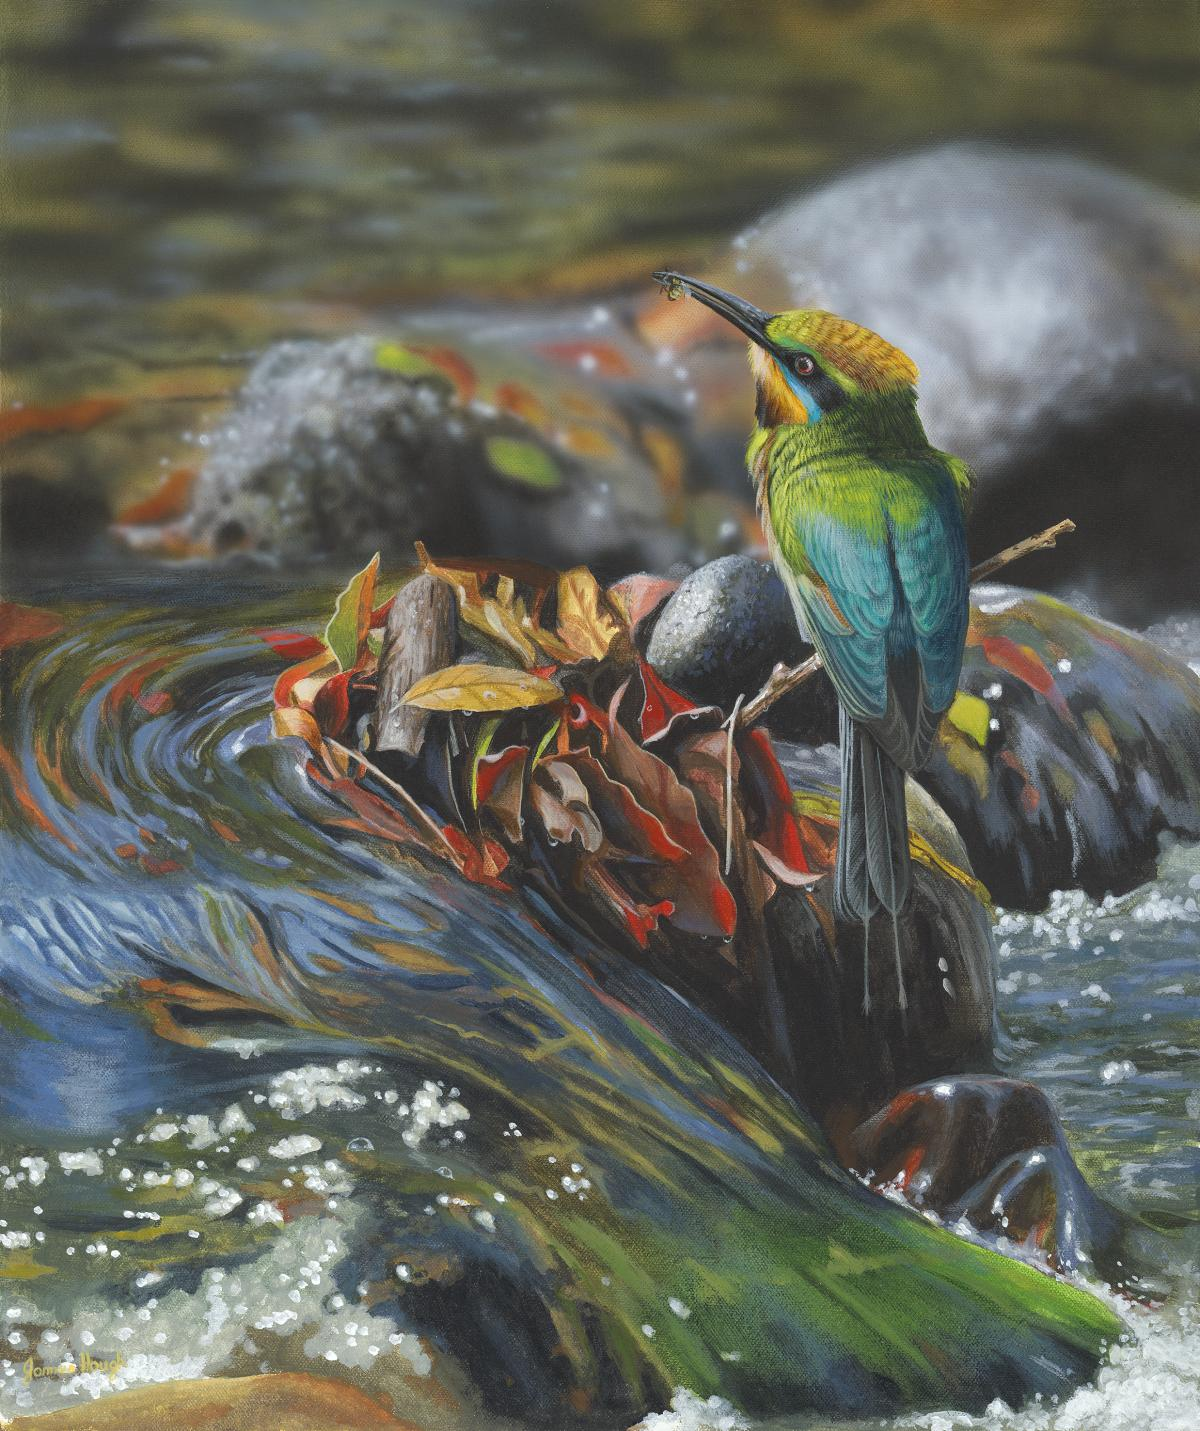 Rivers Reward | Wallhanging by James Hough | Artists for Conservation 2021